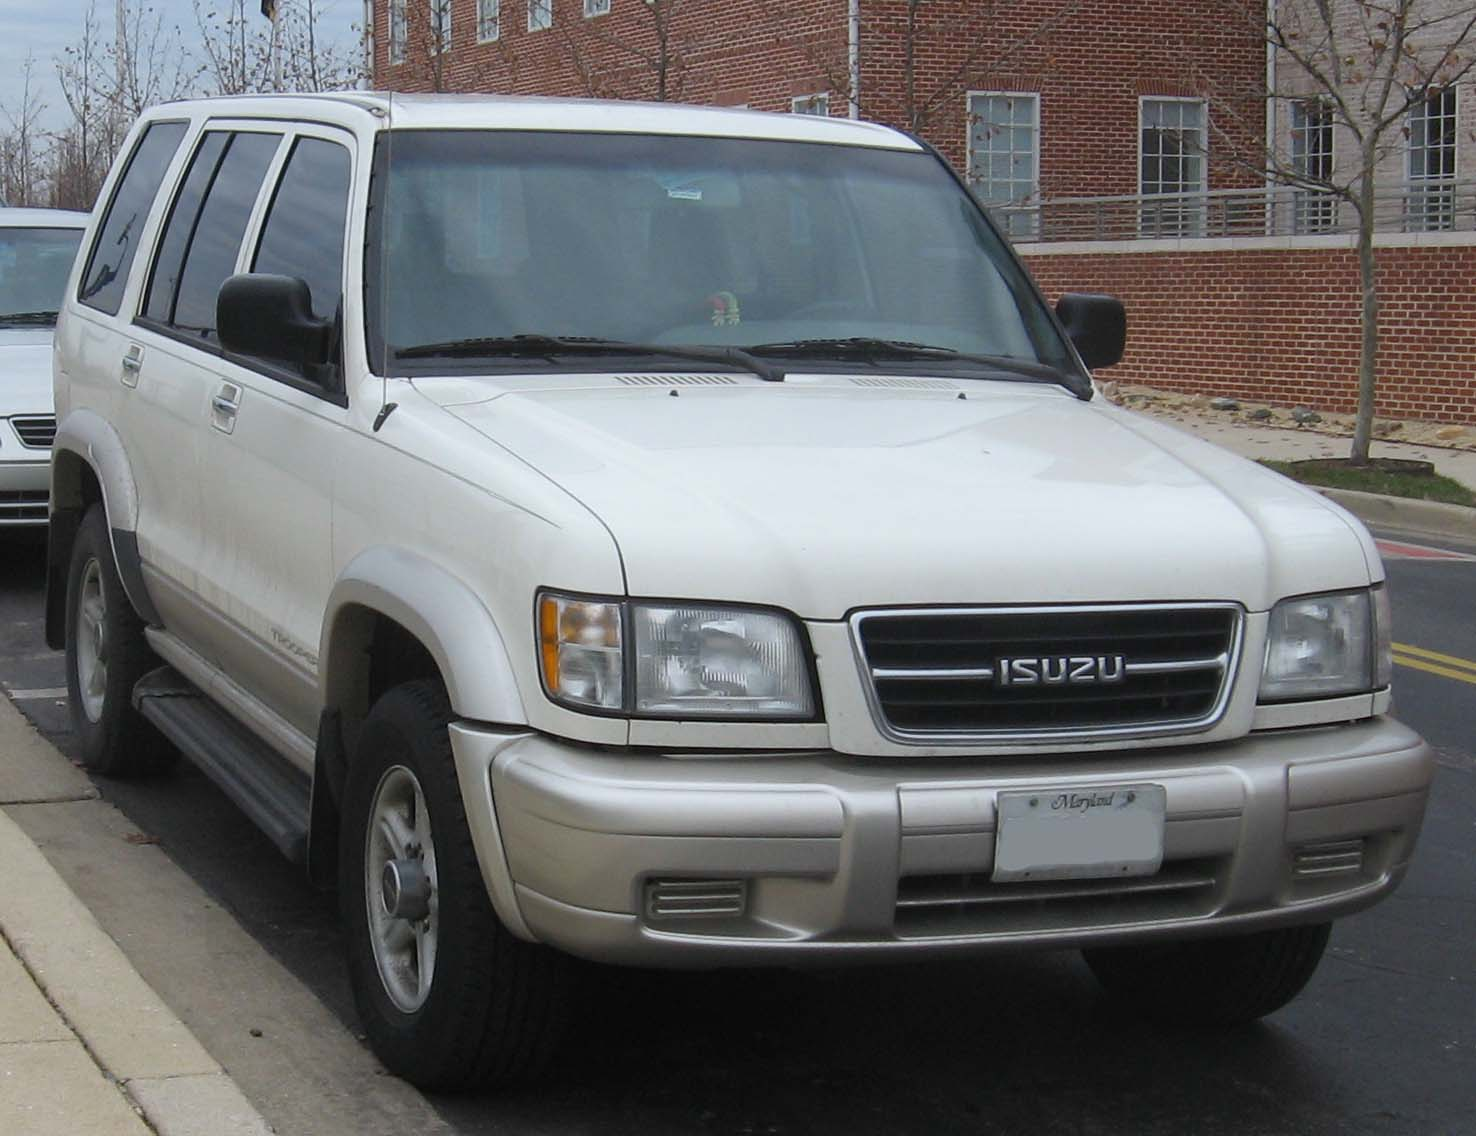 Isuzu Trooper SE #6